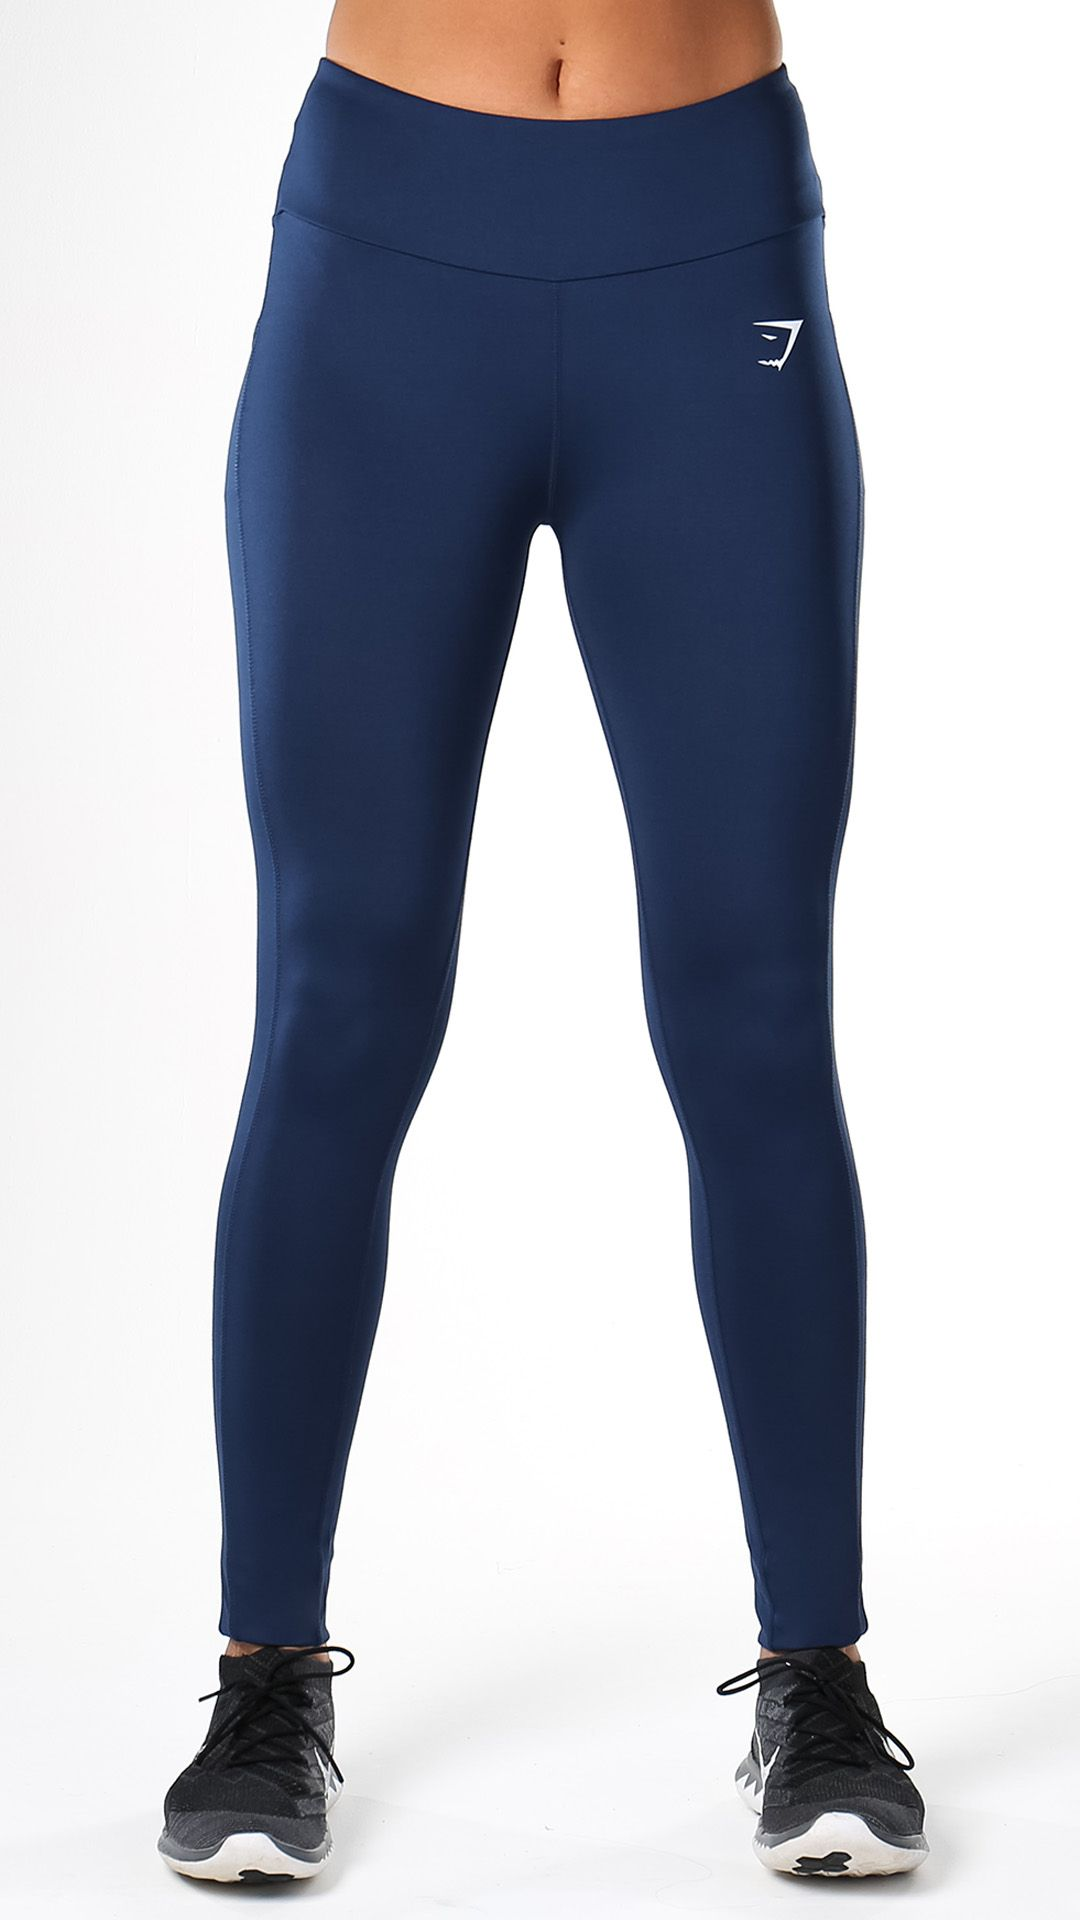 925cb8b0776d2 A high-waisted and flexible exercise leggings, with Gymshark DRY technology  for a cool, comfortable workout. Sculpture gym leggings in Sapphire Blue  launch ...